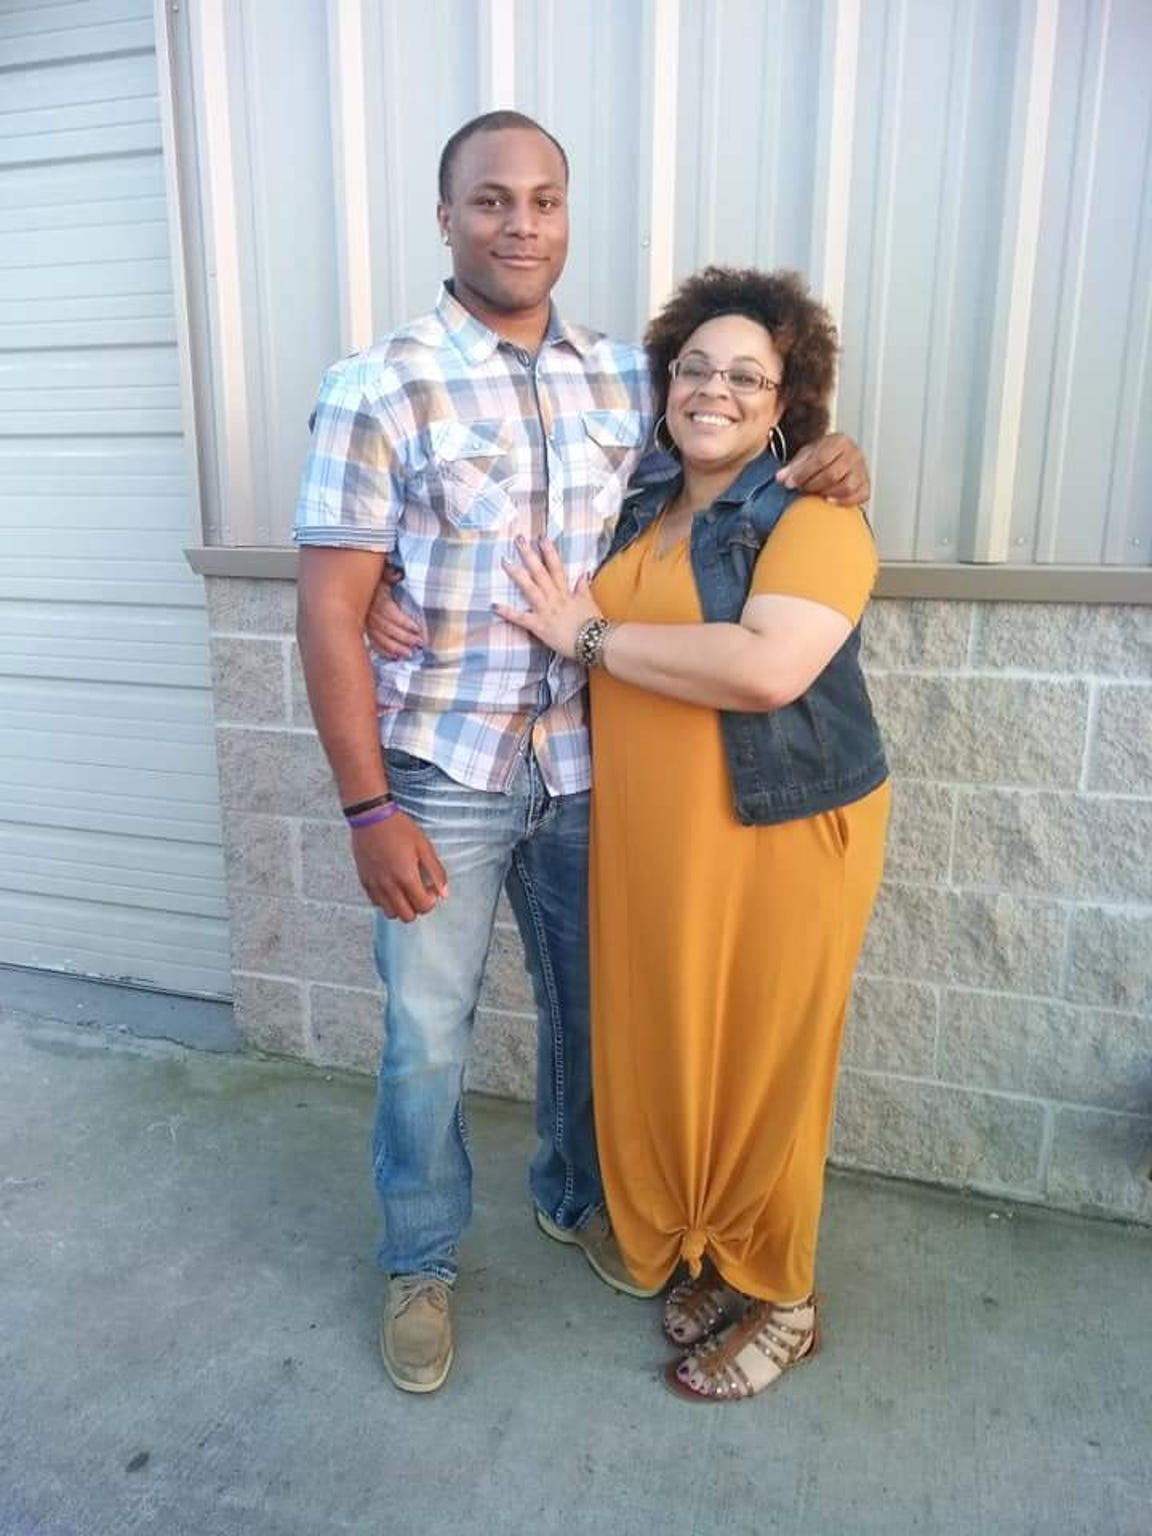 Armonie Brown is seen here with his mother, LaVena Williams. Brown is one of South Texas' most recruited football players and after Hurricane Harvey is back living with his mother.